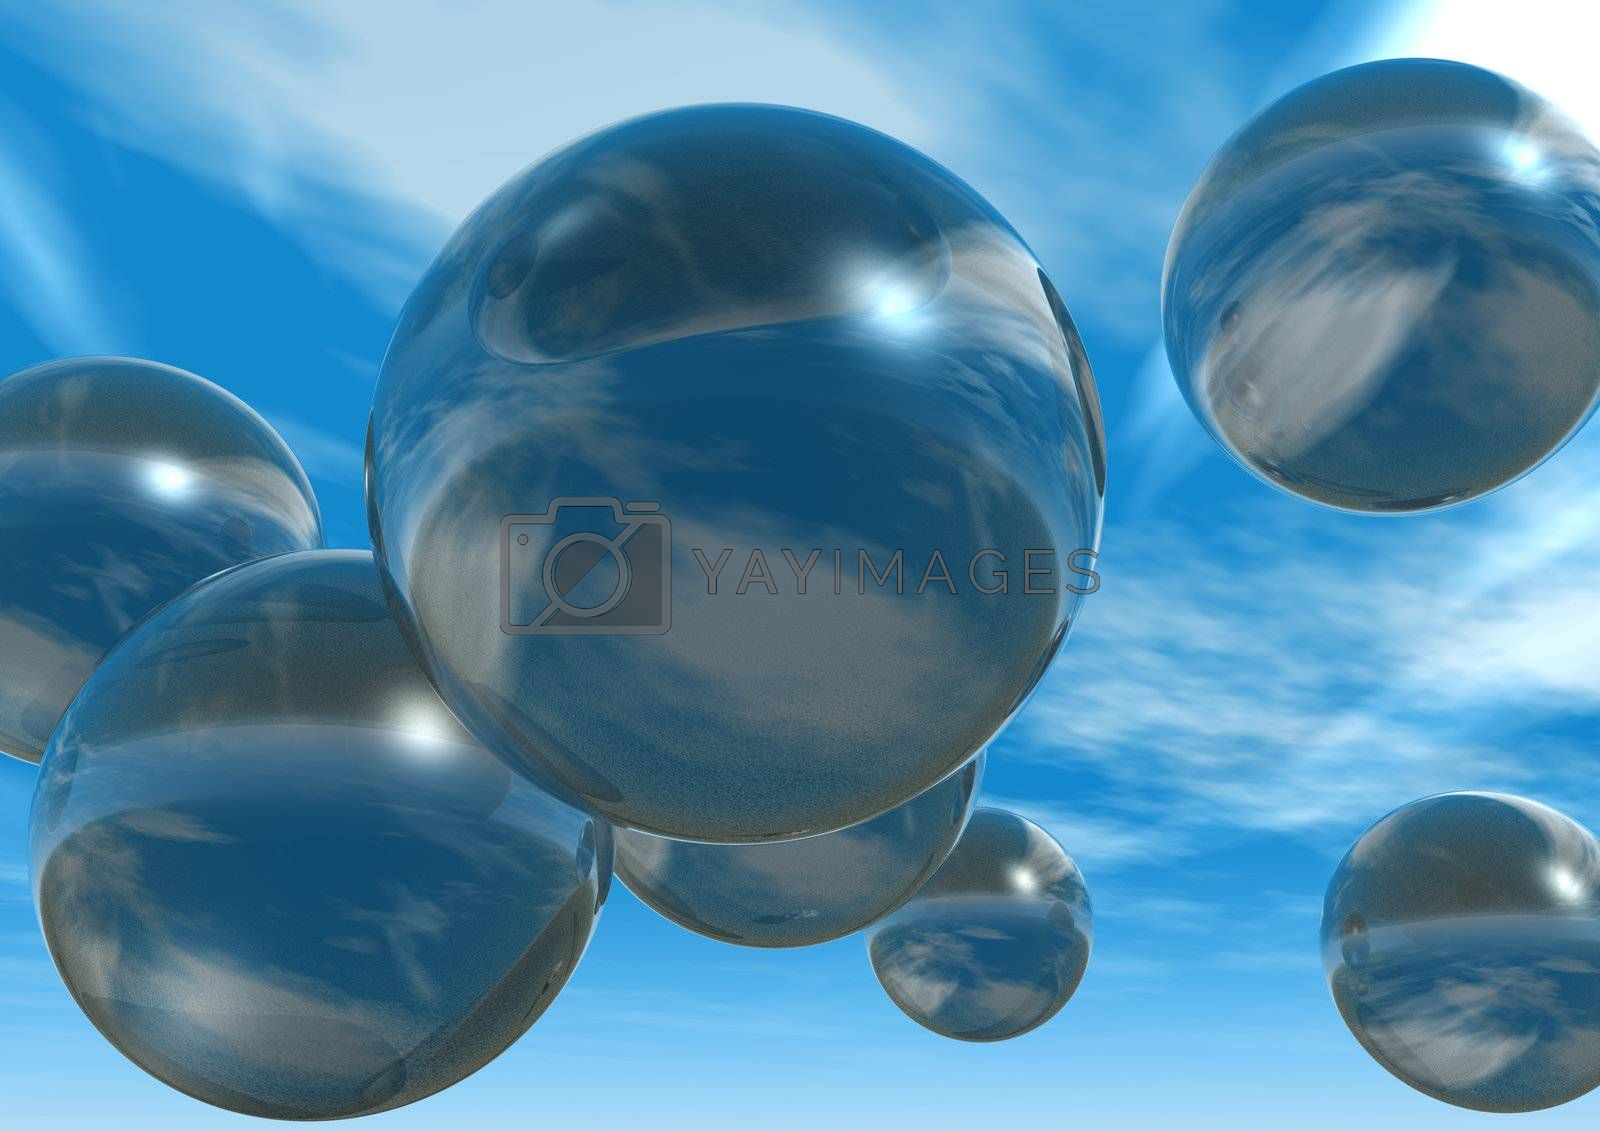 Royalty free image of bubbles by drizzd